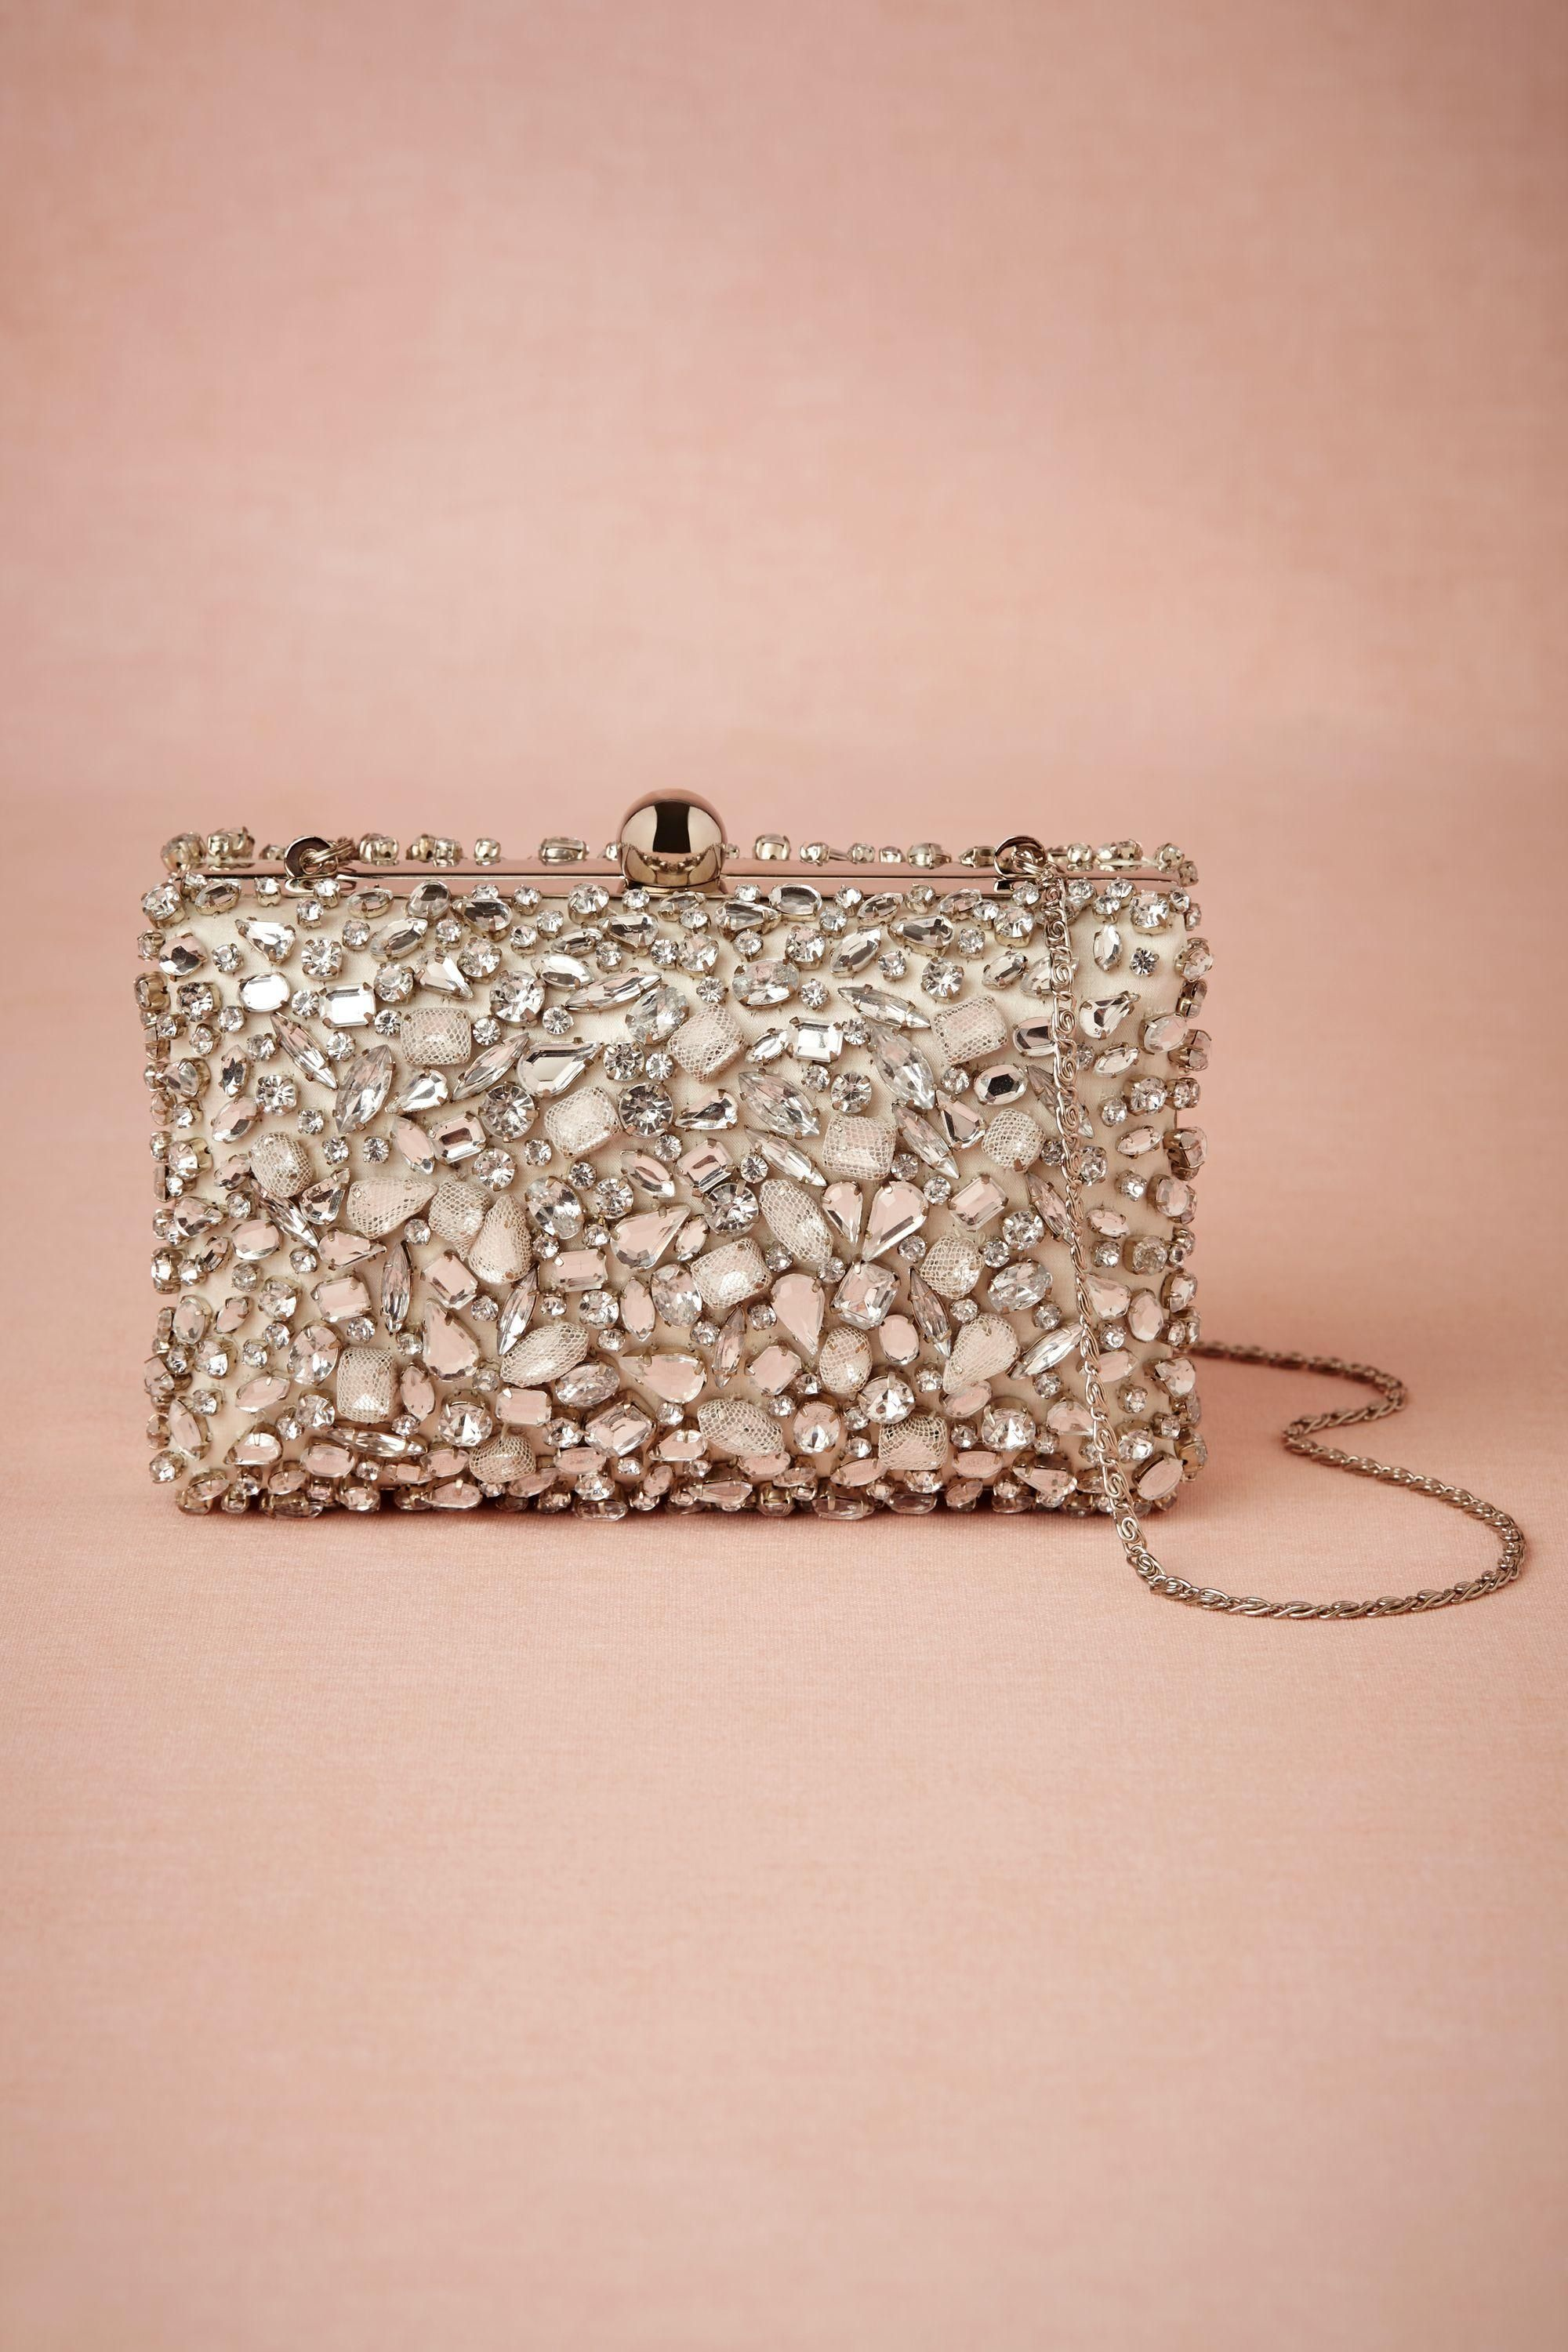 11791c315ea This jeweled clutch purse is beautiful.  wedding  bridal  gift  bridesmaids   purse  evening  party  dance